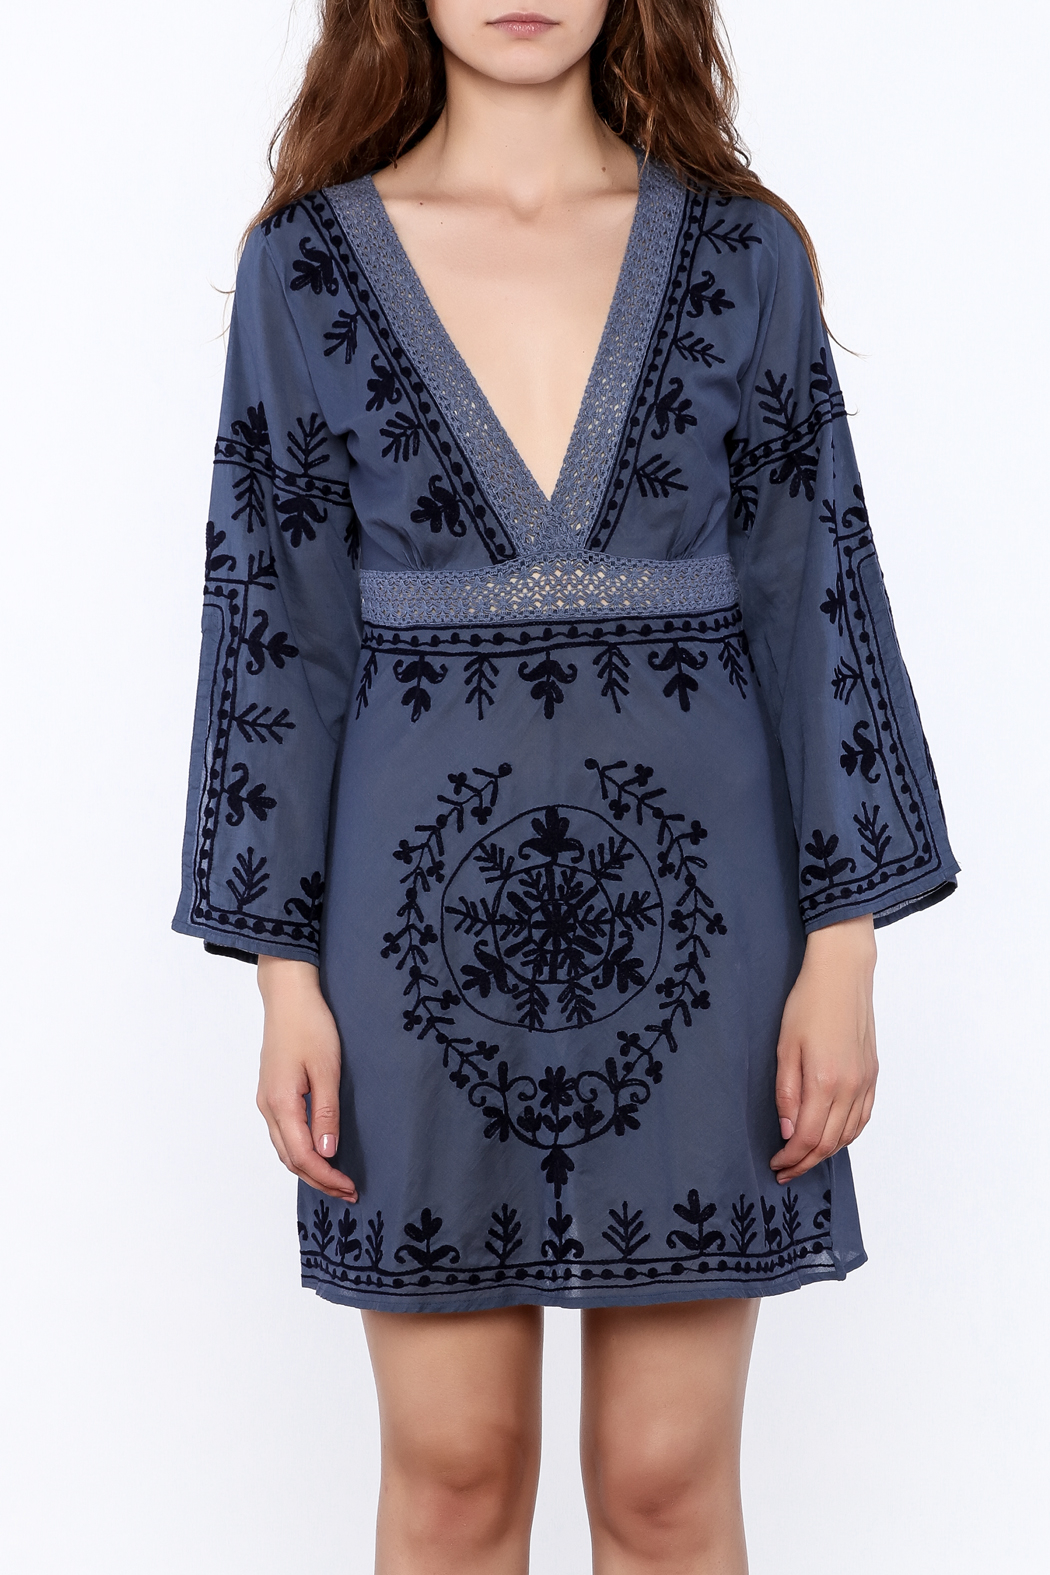 Debbie Katz Blue Embroidered Dress - Side Cropped Image